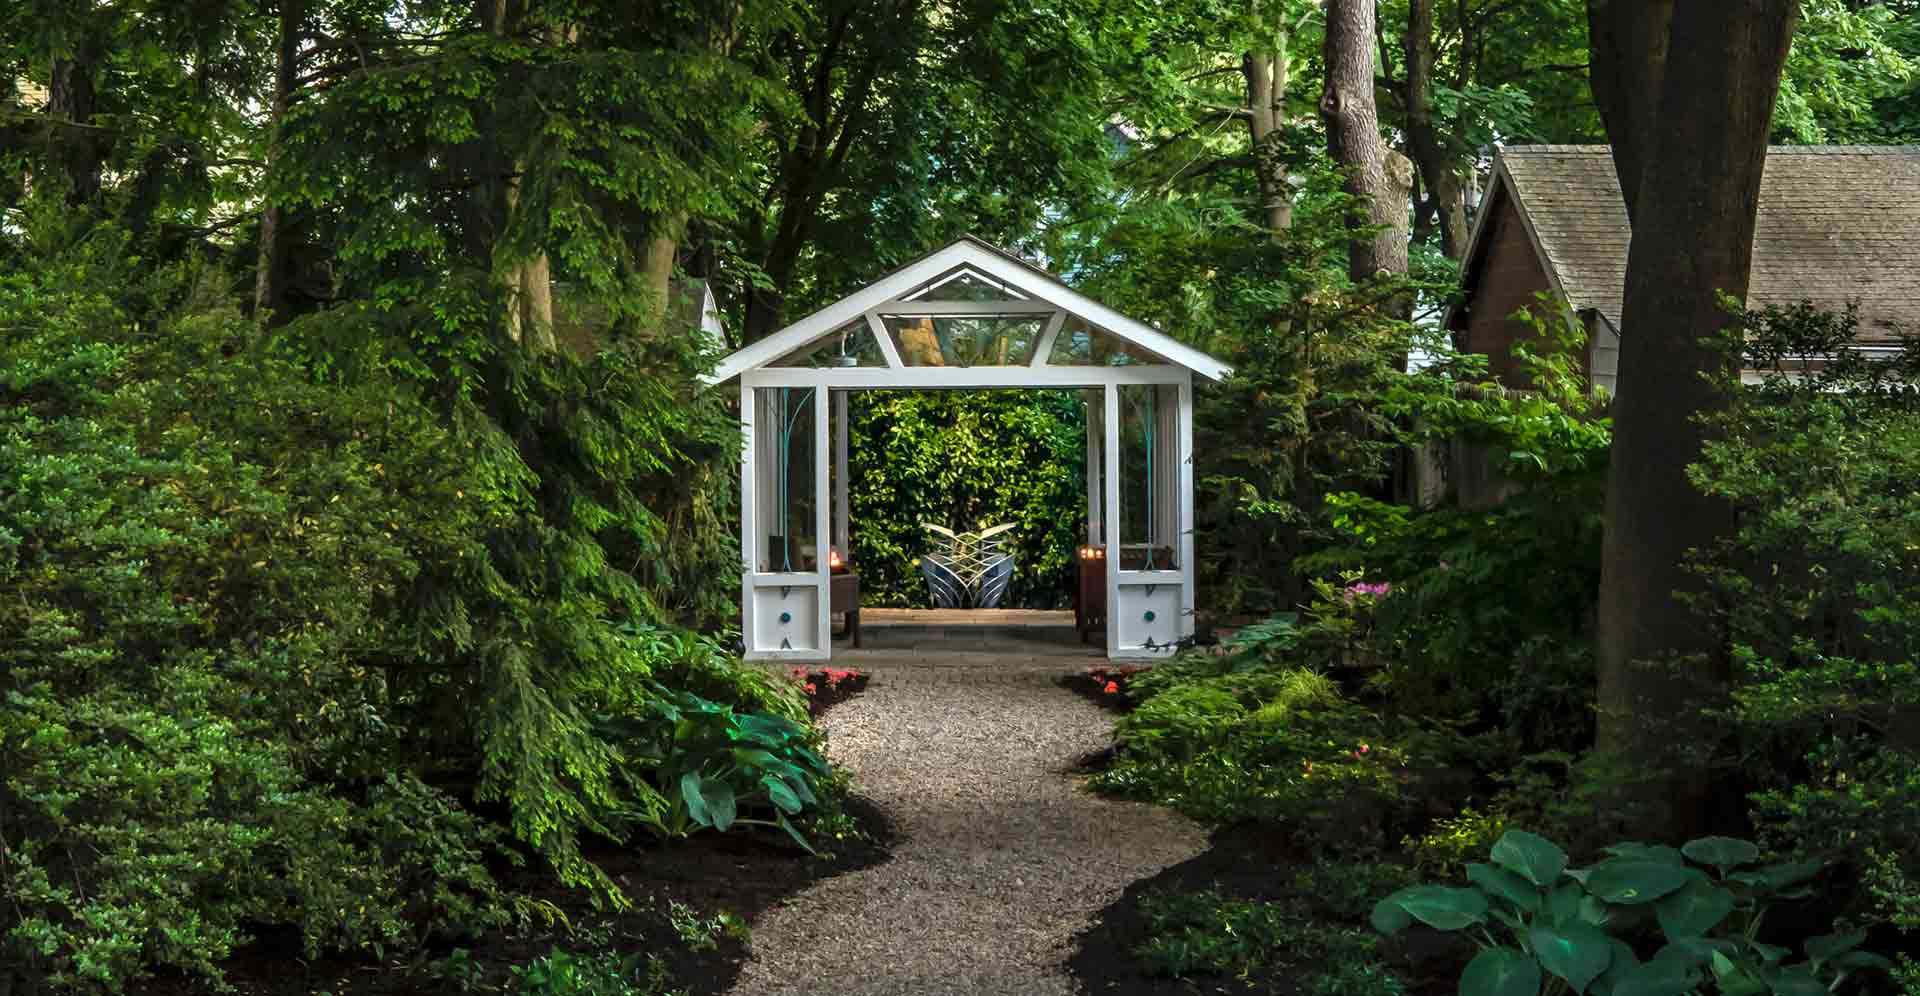 3Gazebo-584-web-crop